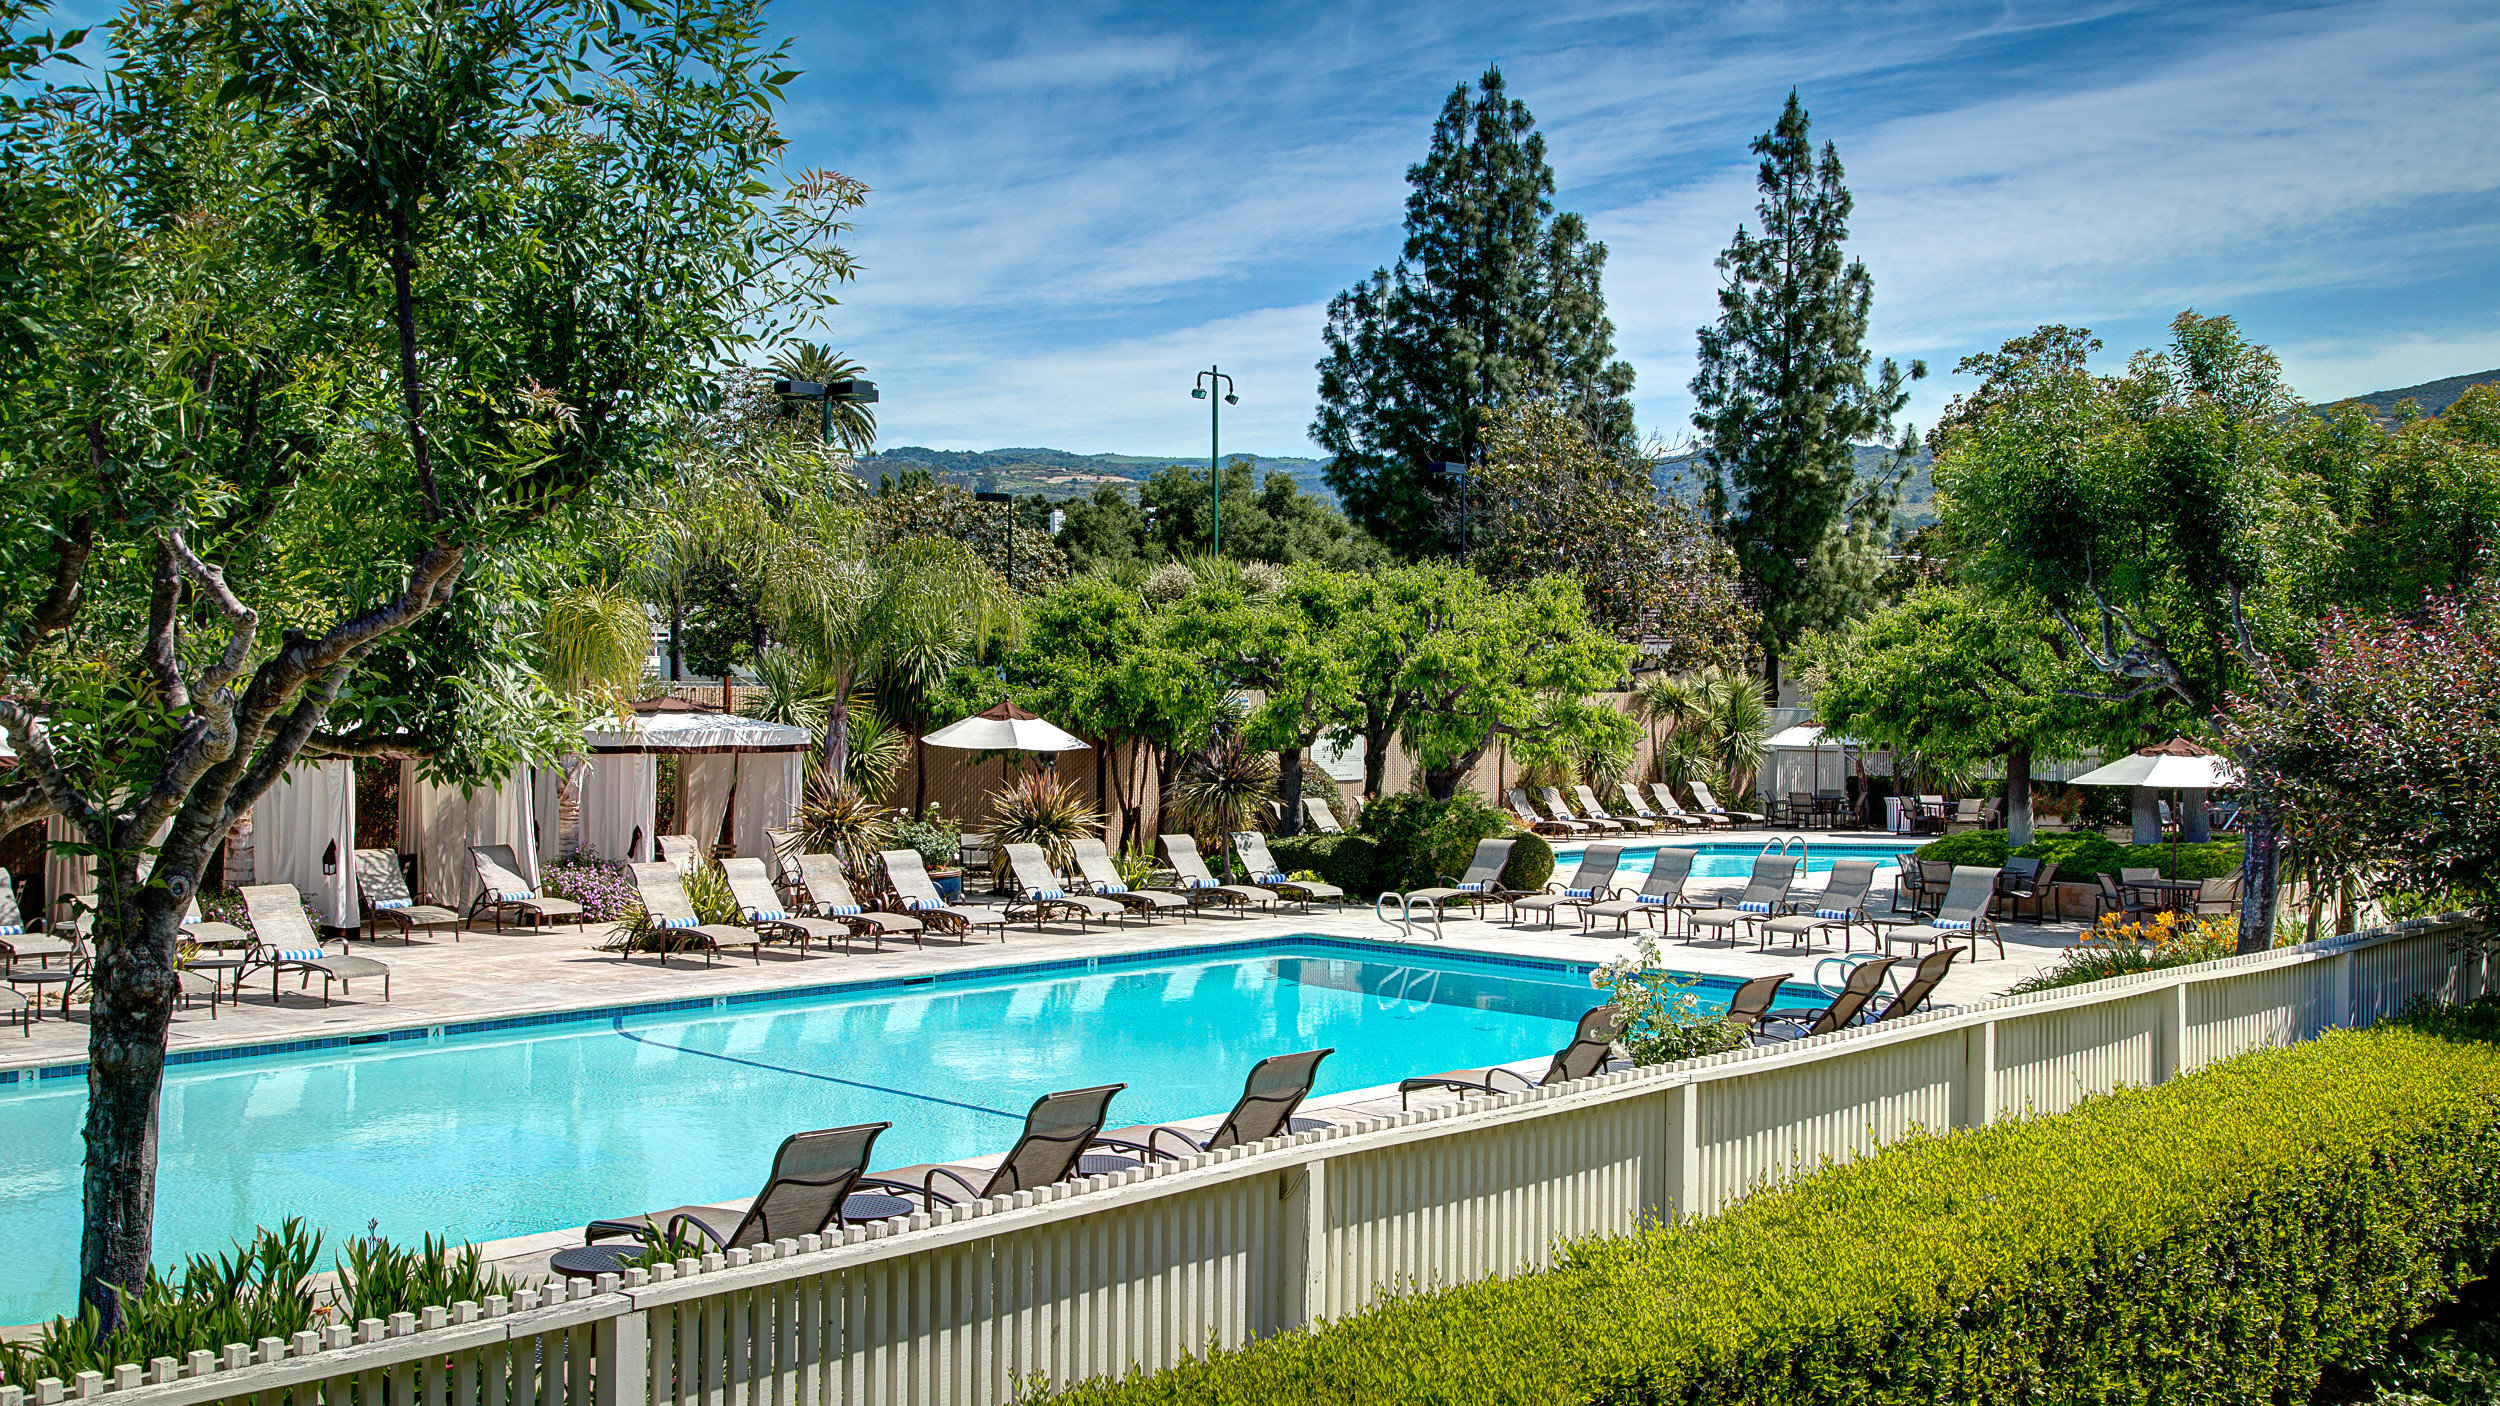 Deck Grounds Mountains Natural wonders Outdoor Activities Outdoors Pool Romance Scenic views Wine-Tasting Winery tree leisure swimming pool property Resort Villa lined